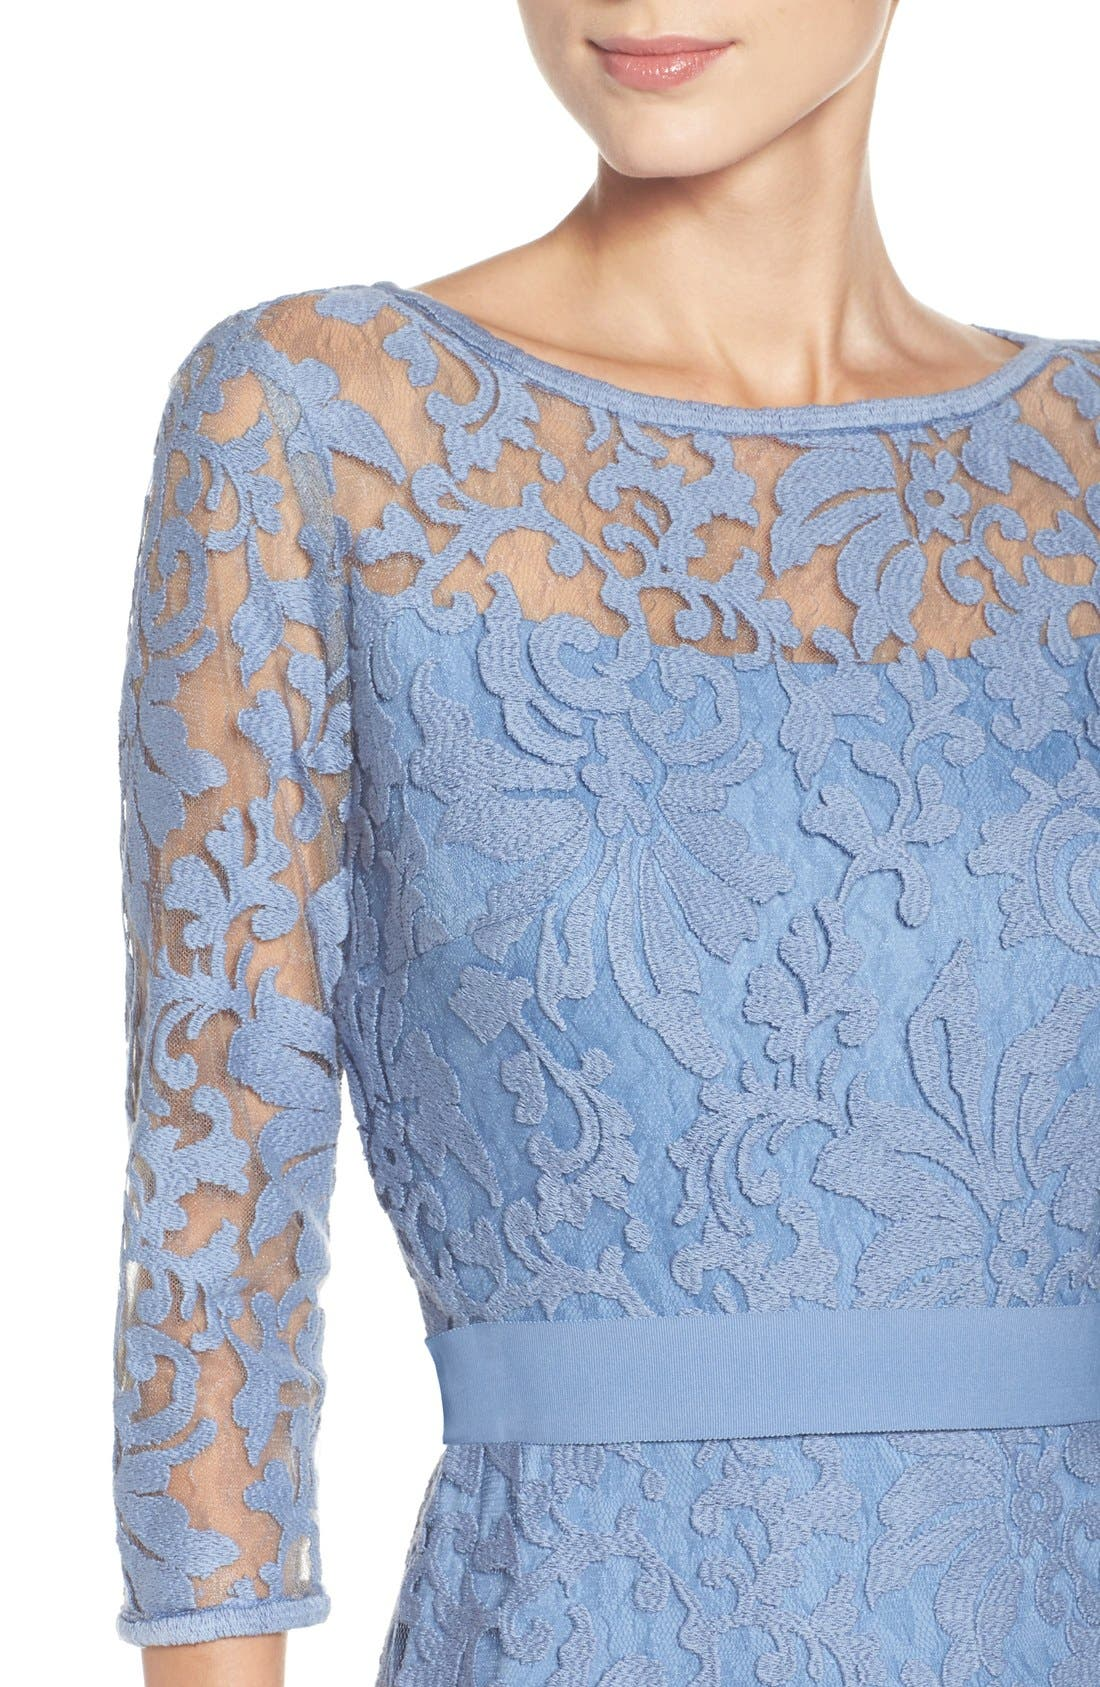 Lace Overlay Dress,                             Alternate thumbnail 24, color,